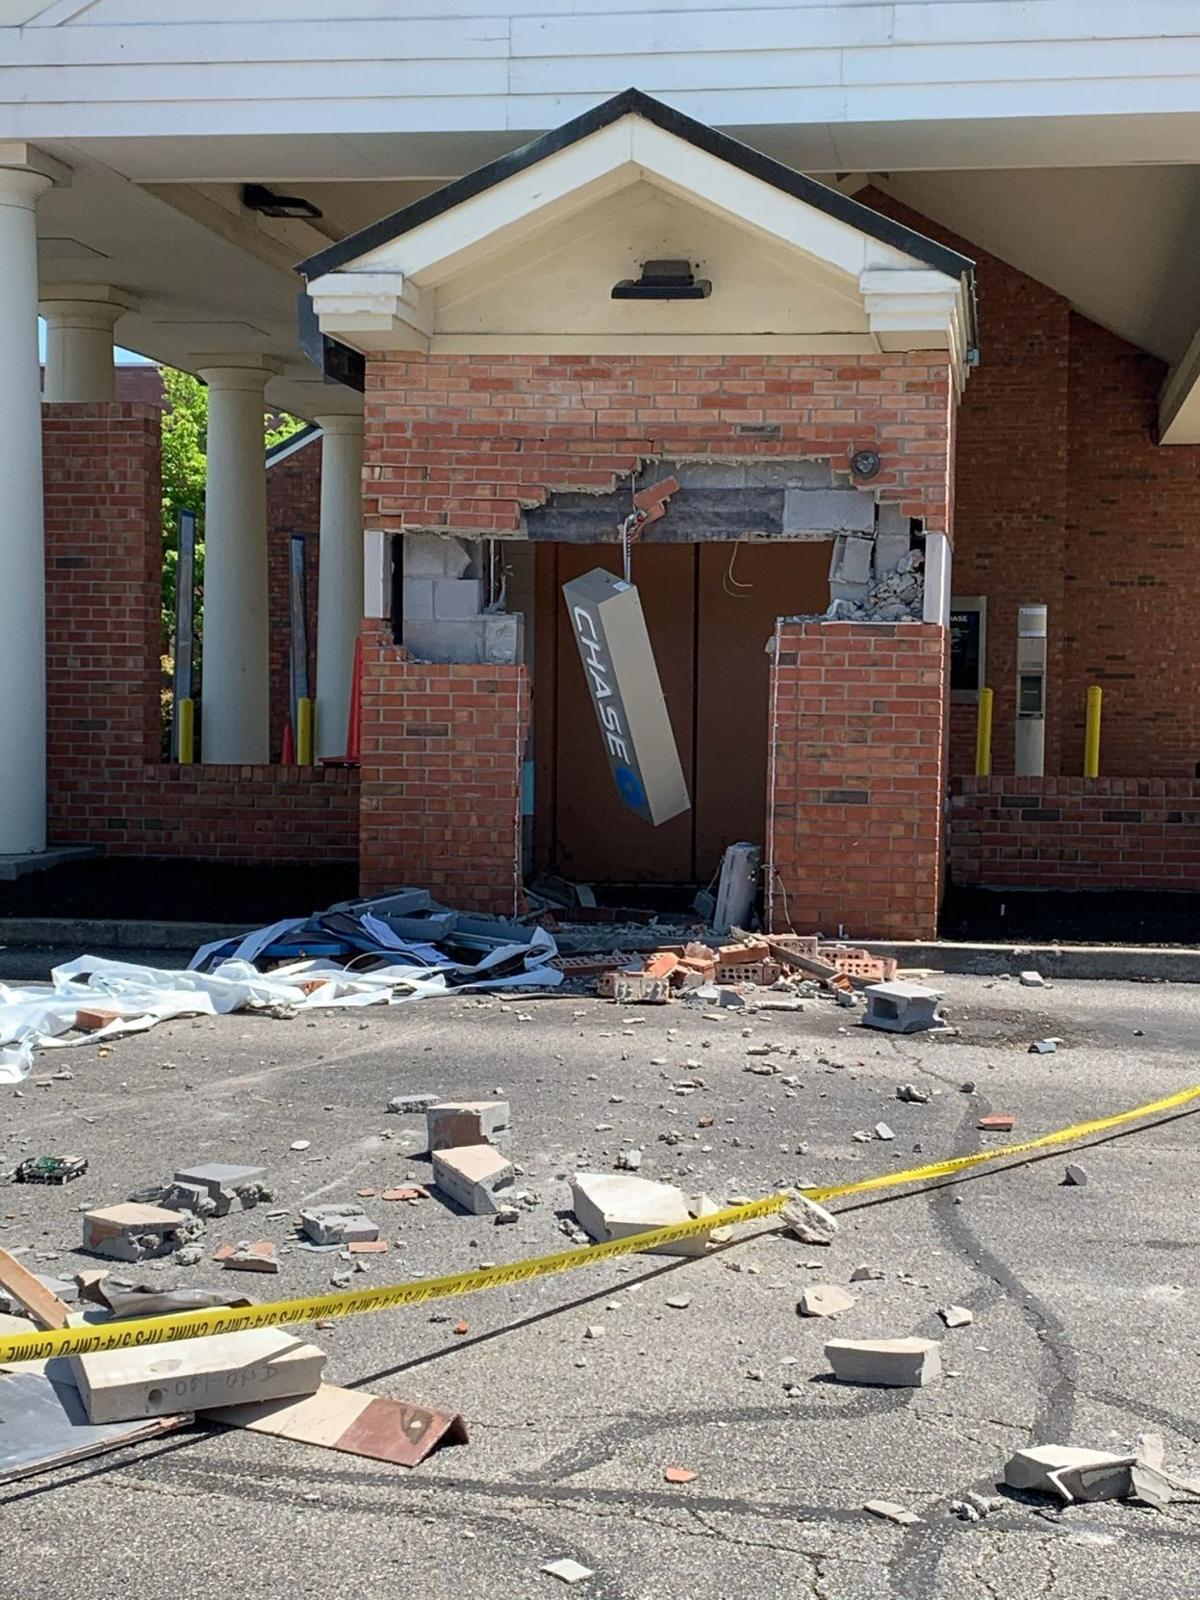 Holiday Manor Chase ATM robbery 2.jpg